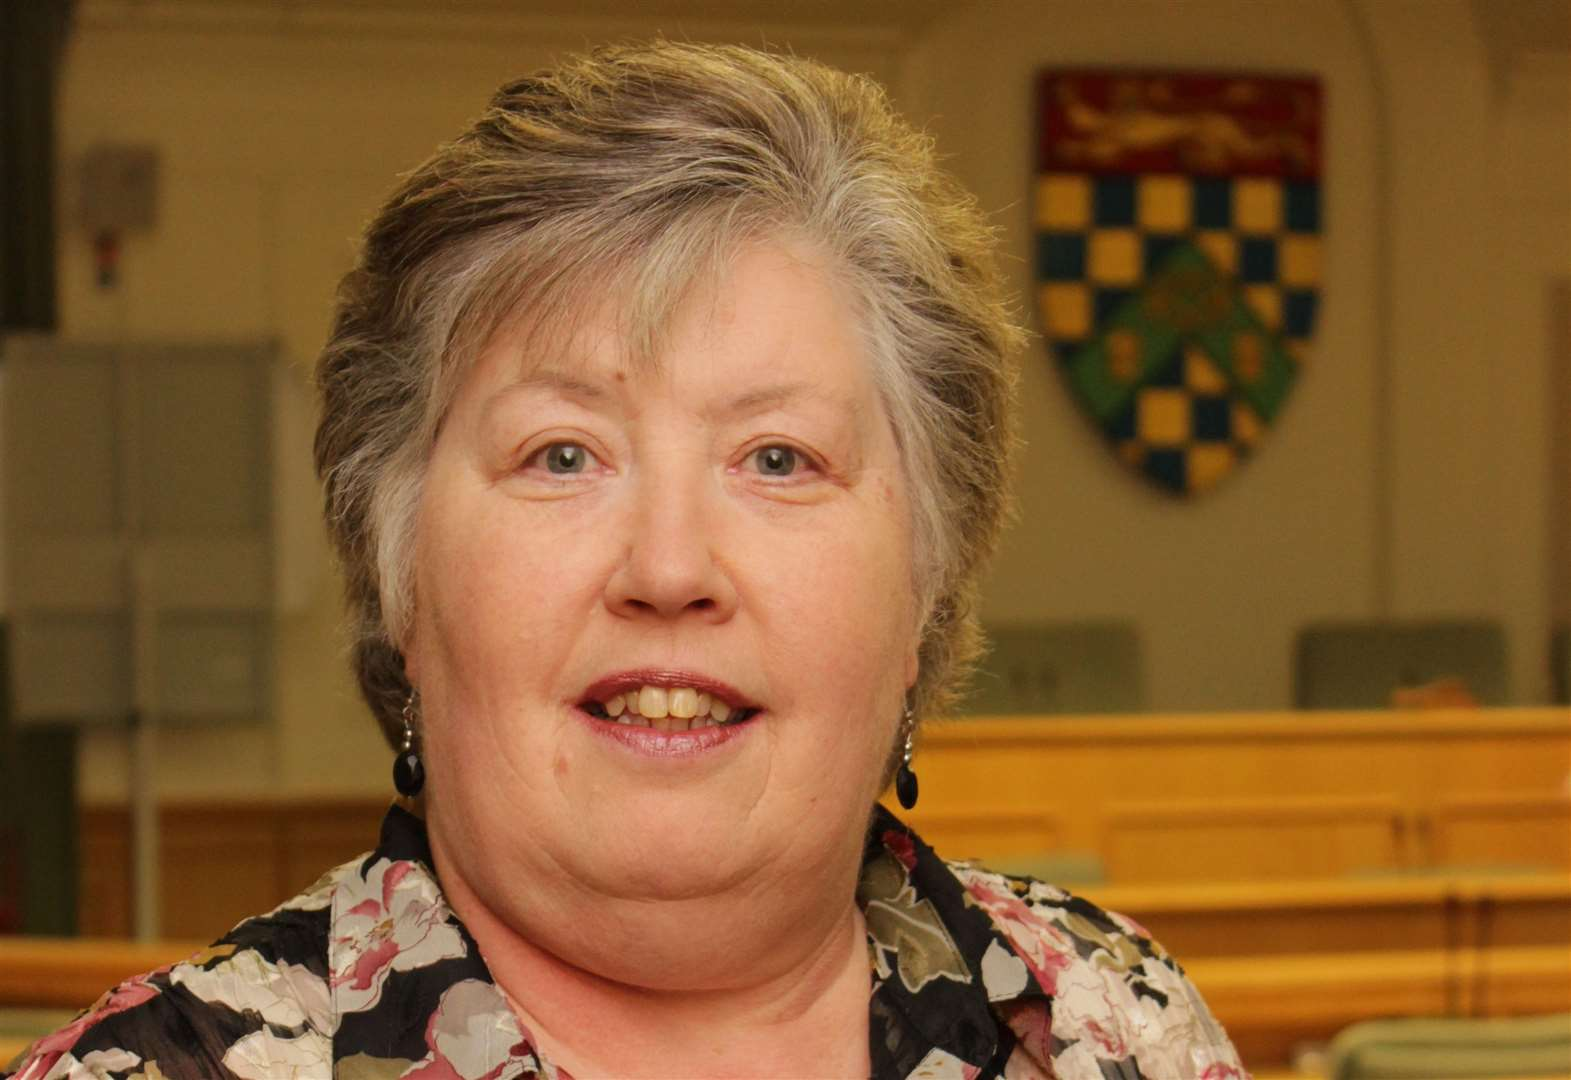 Former South Kesteven District Council leader Linda Neal has died